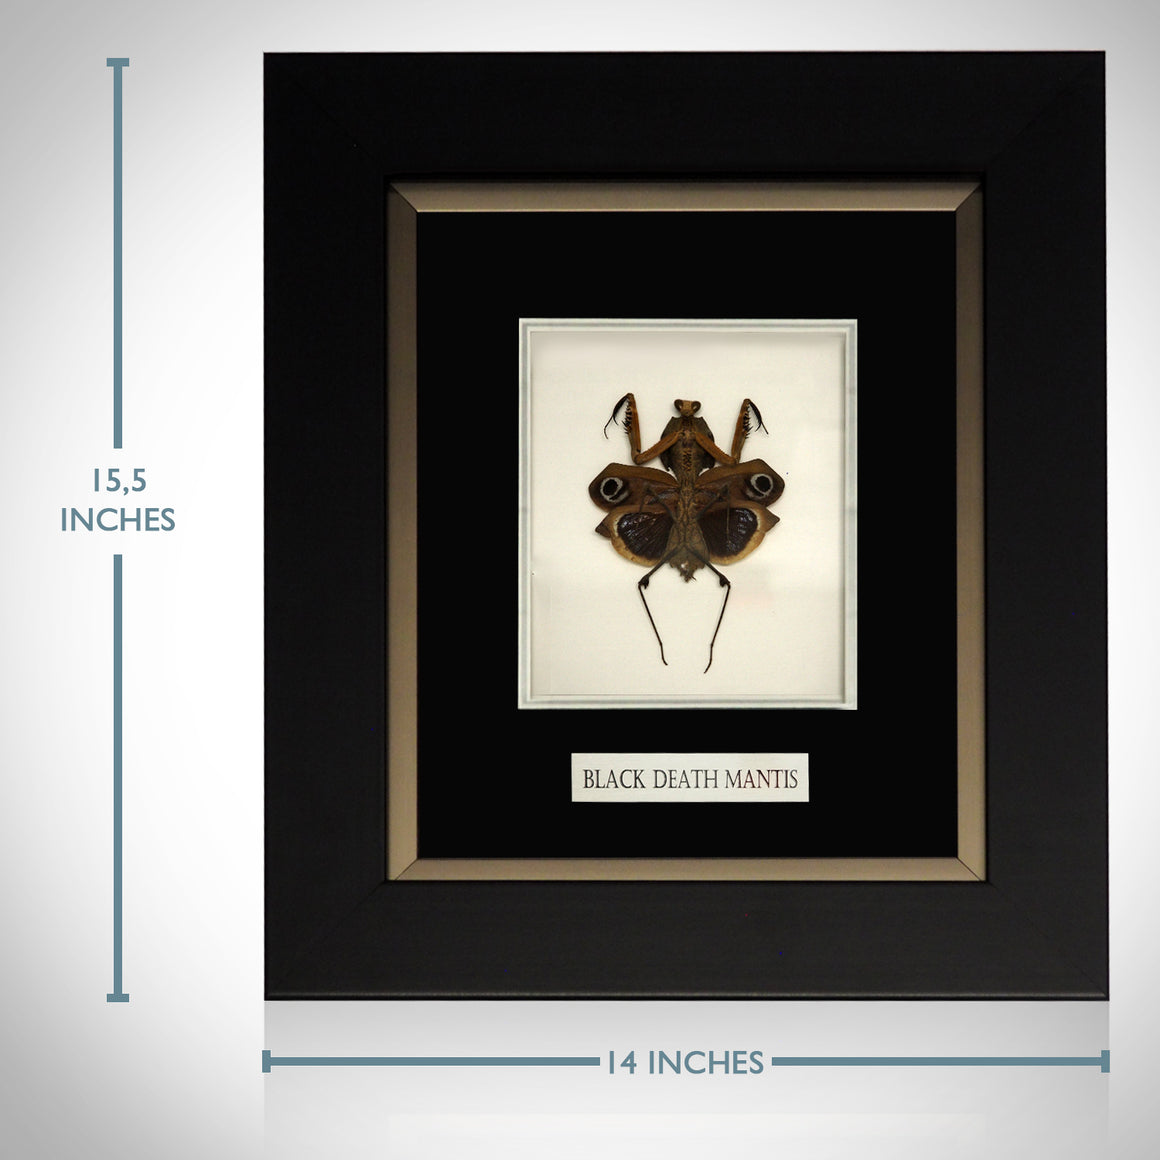 RARE-T Exclusive 'AUTHENTIC BLACK DEATH MANTIS' Custom SHADOW BOX Frame